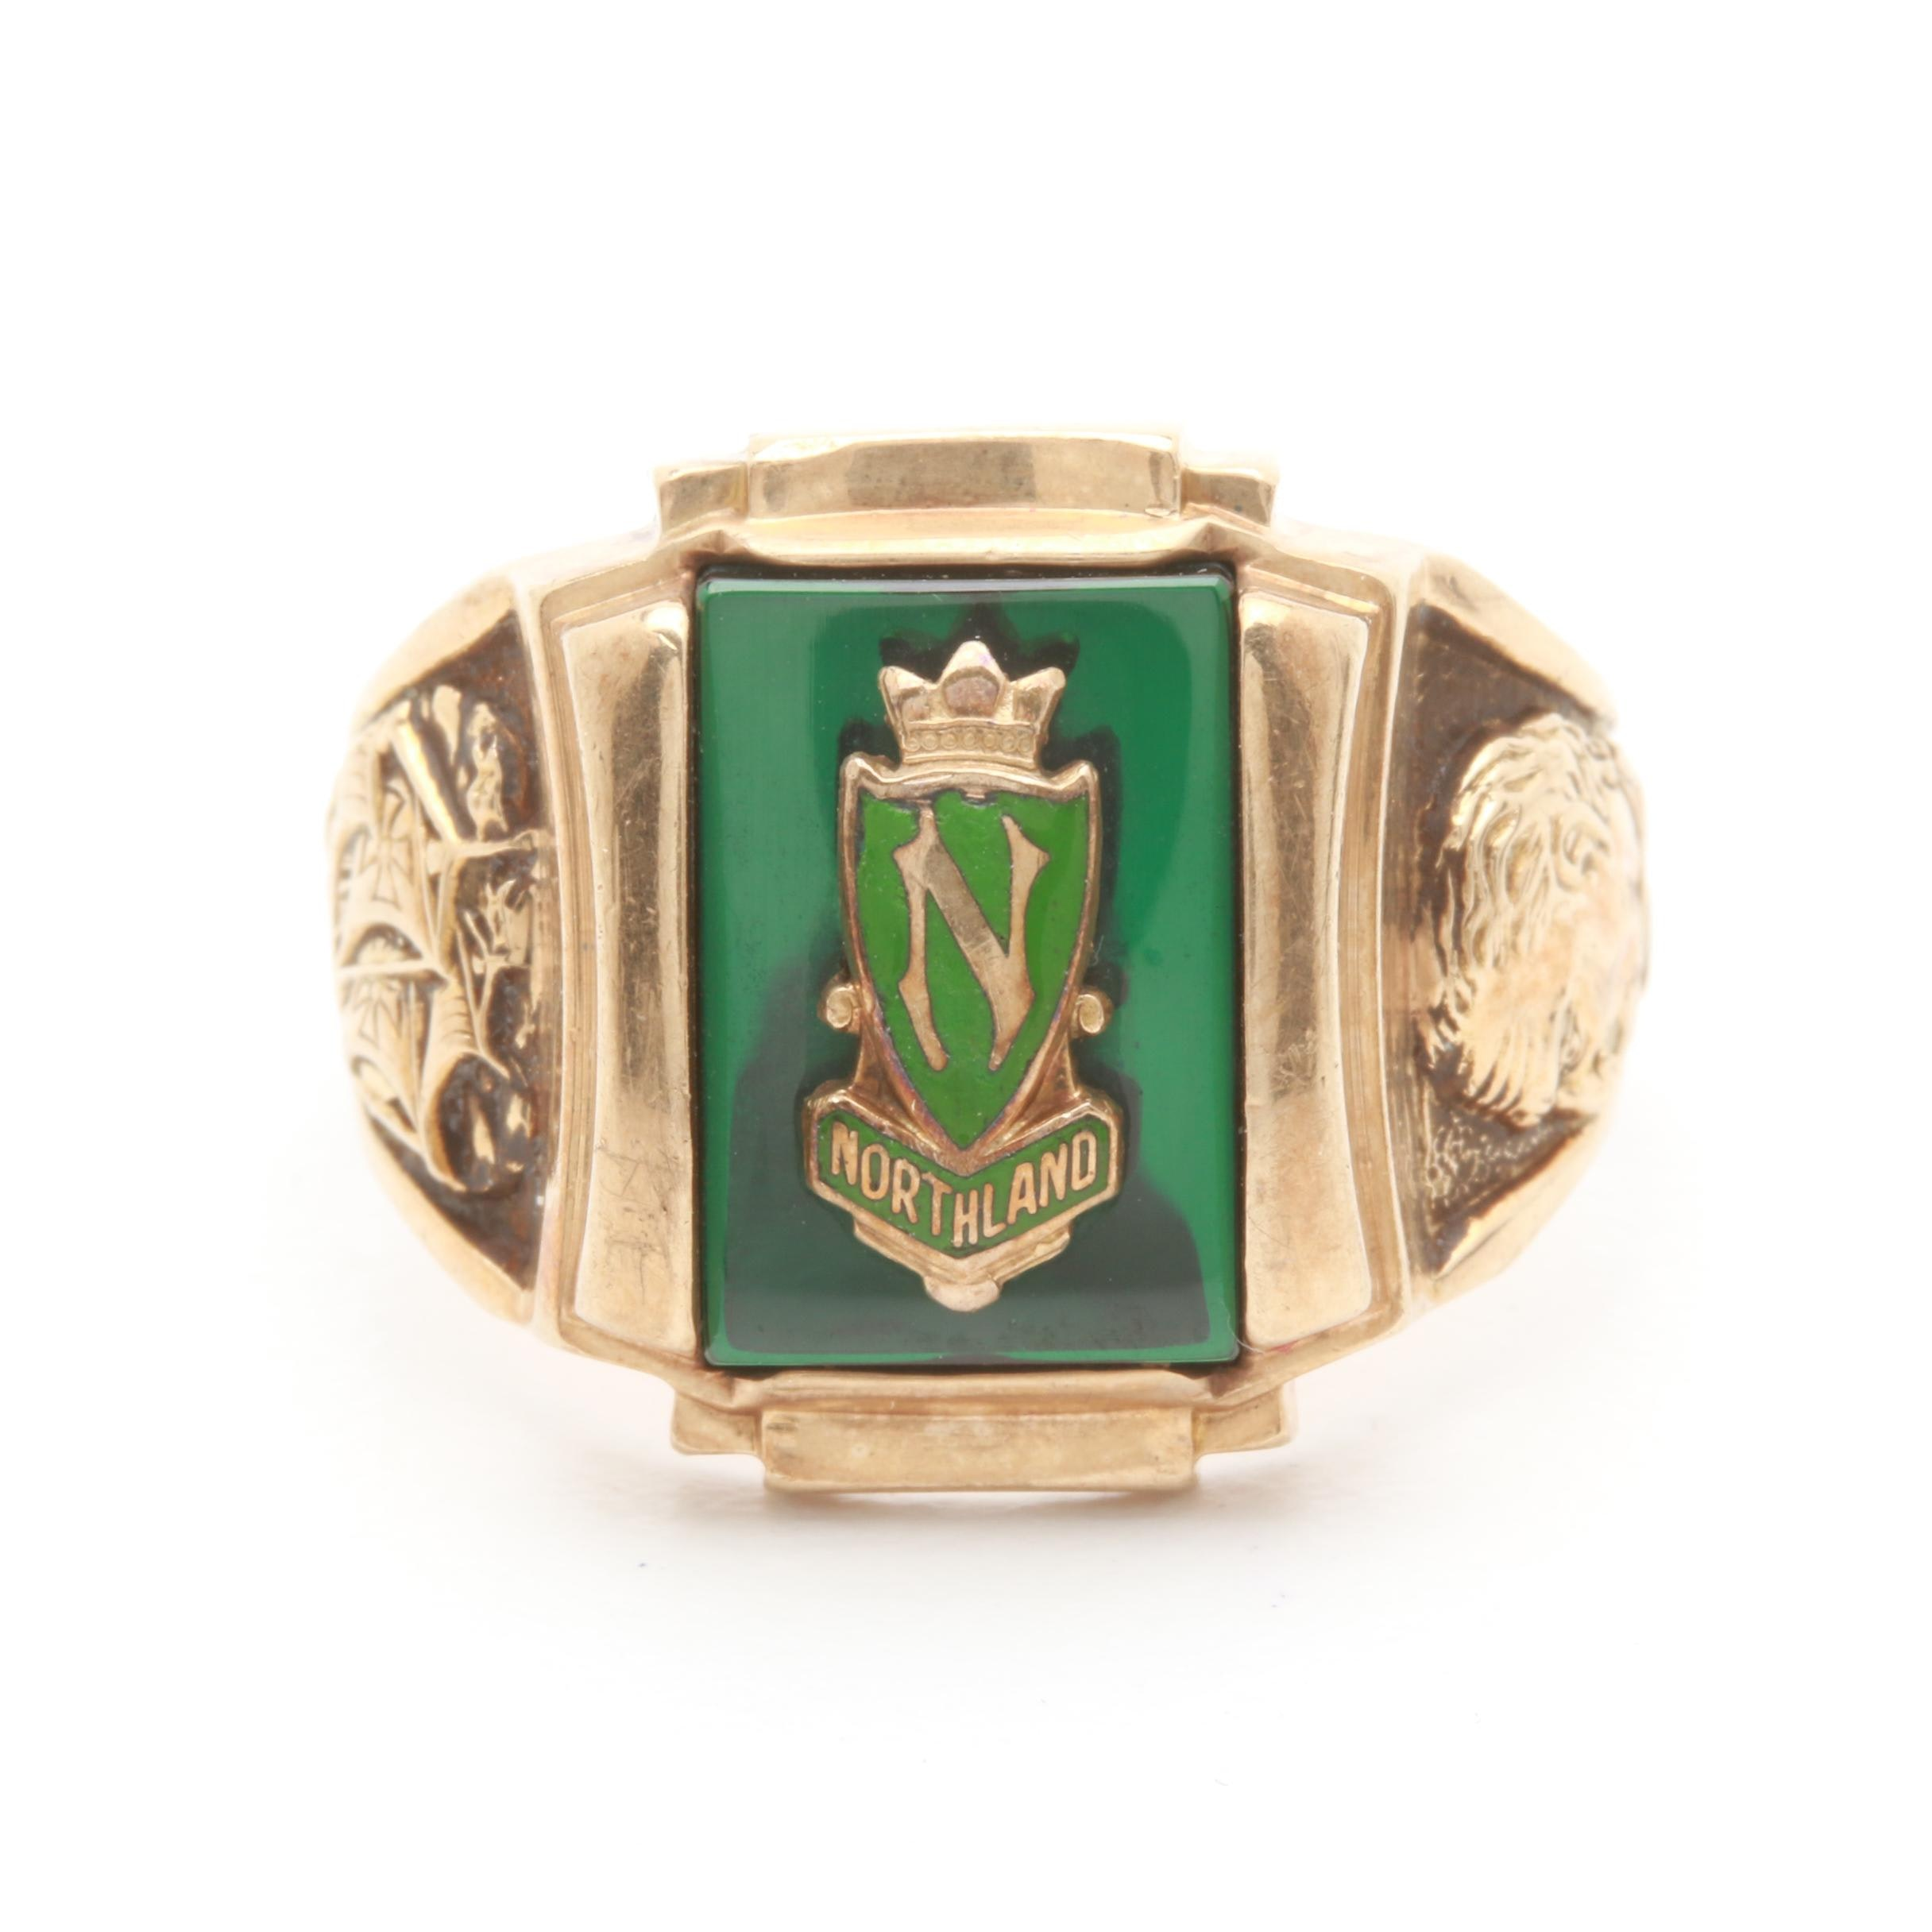 Circa 1971 10K Yellow Gold Synthetic Spinel and Enamel Class Ring